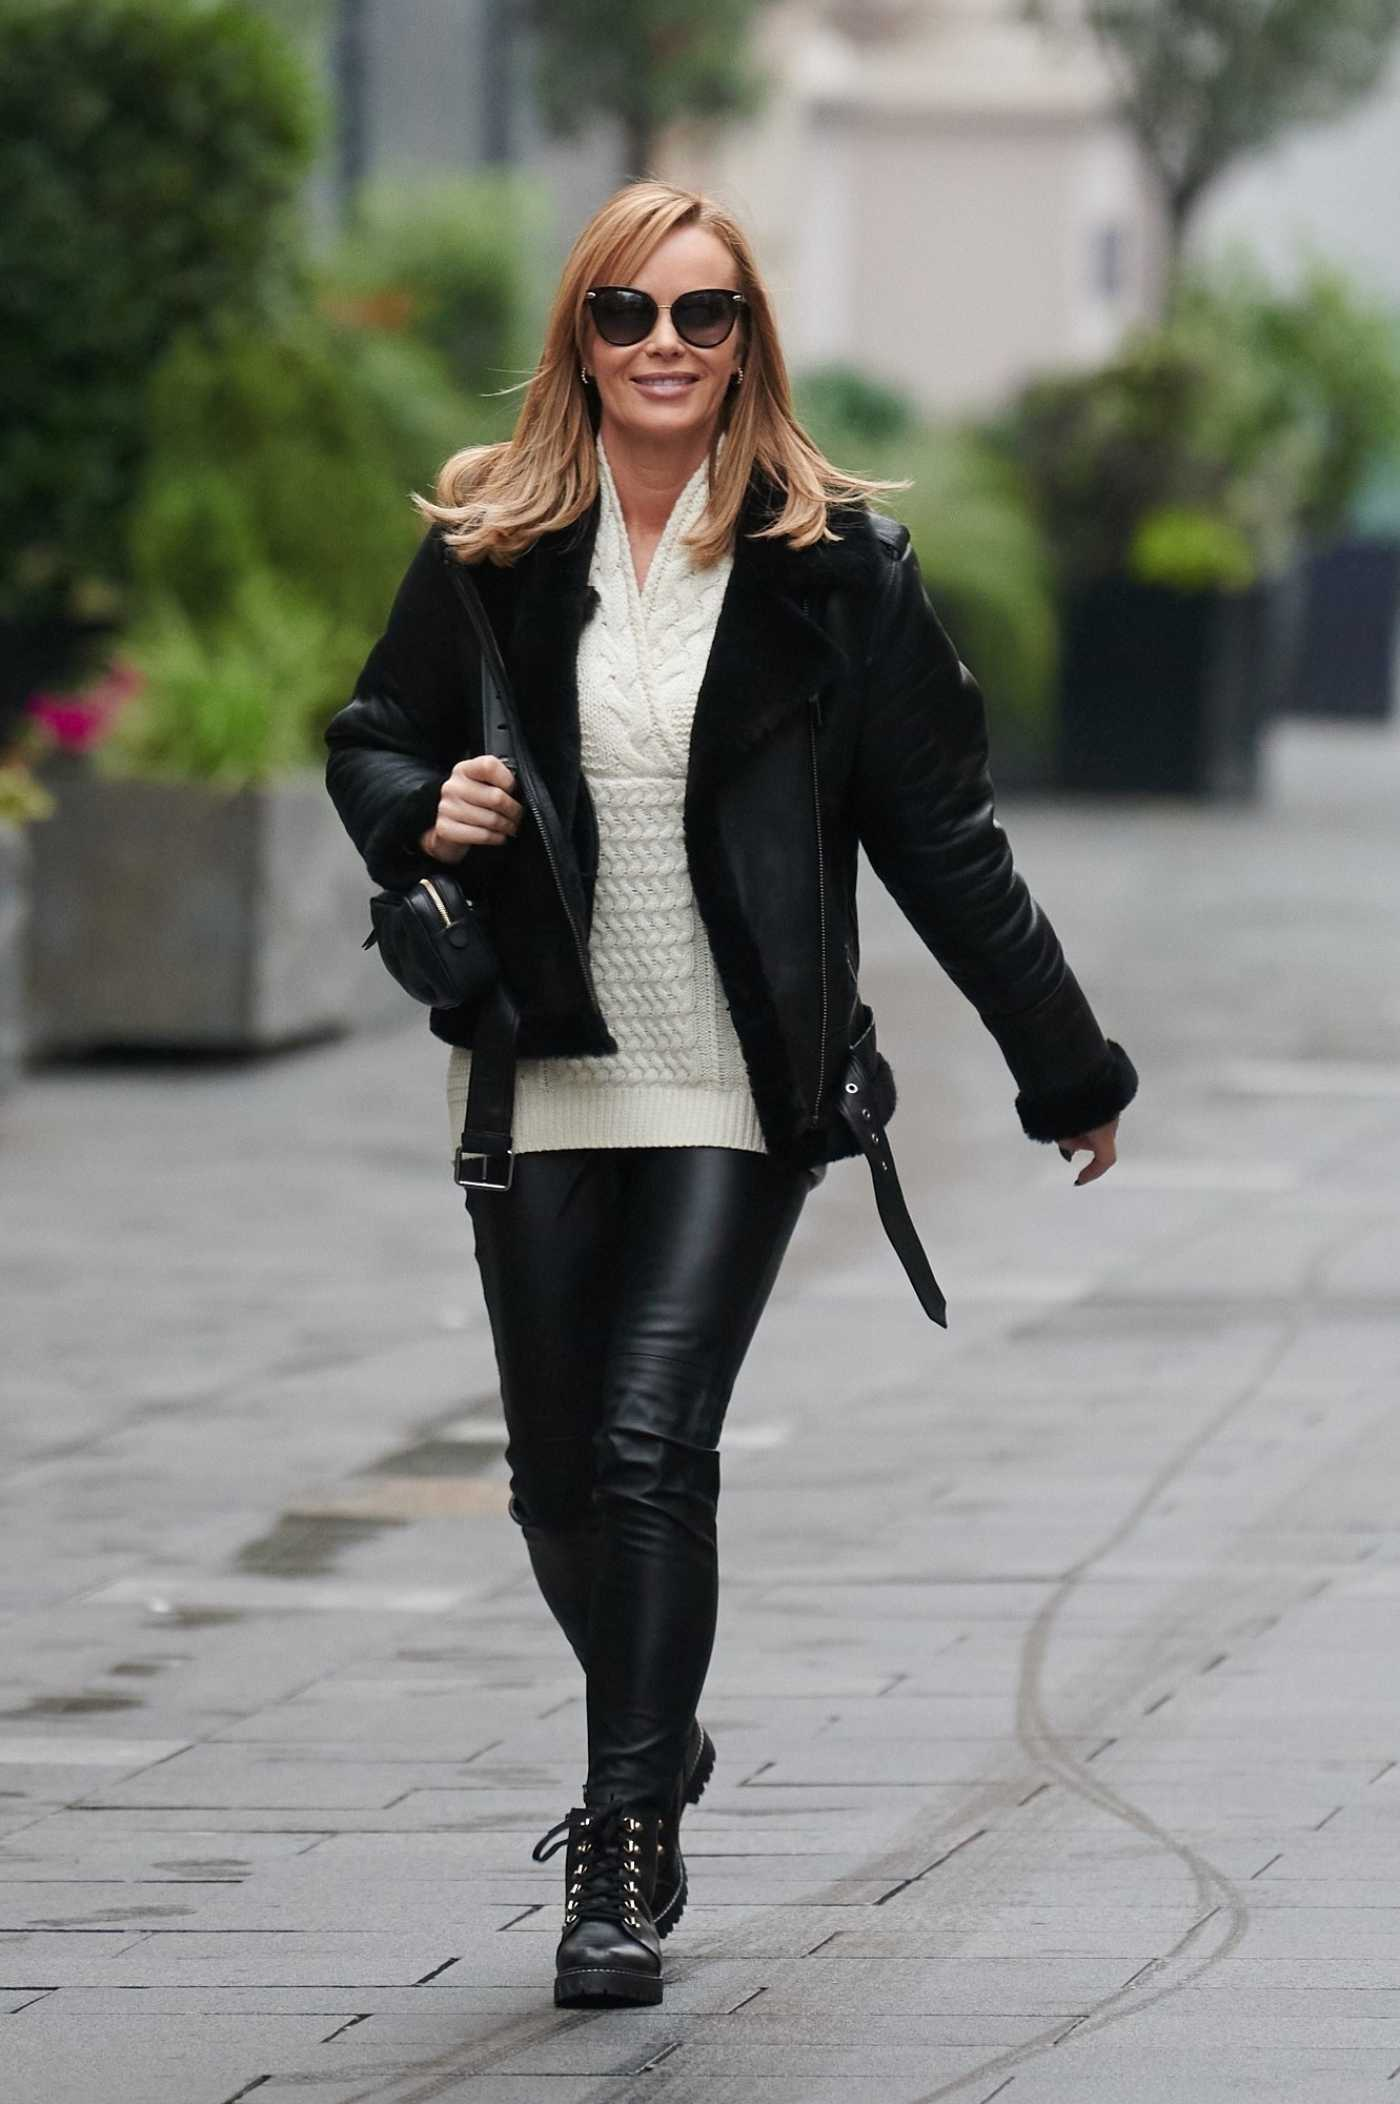 Amanda Holden in a Black Jacket Leaves the Global Radio in London 11/25/2020